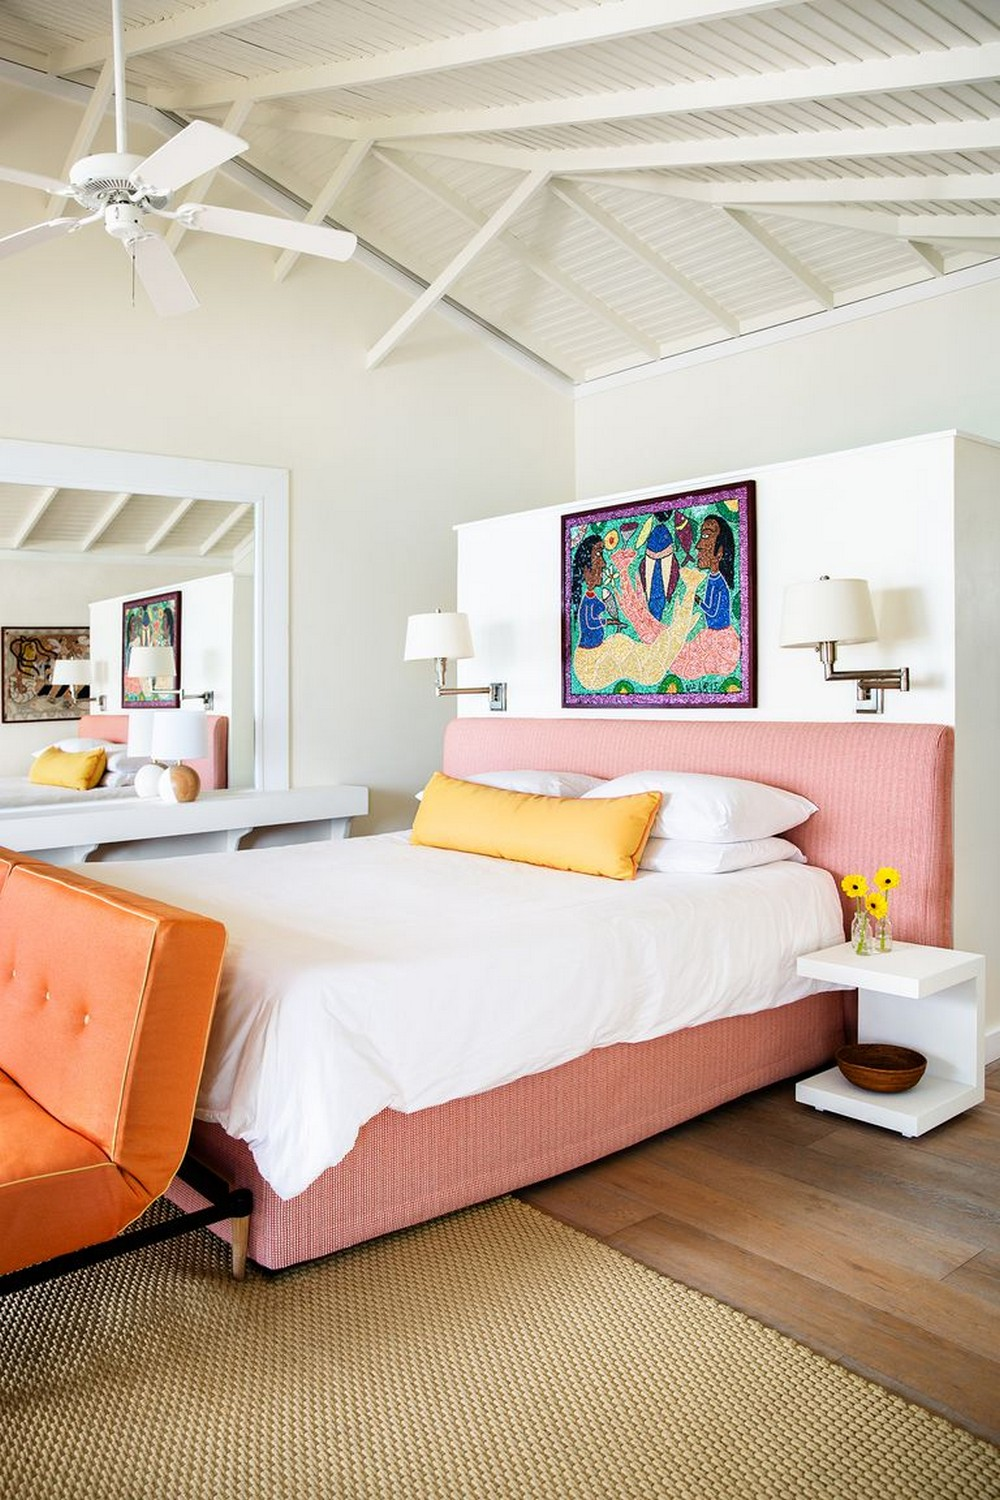 House Beautiful Shows The Trendiest Hospitality Project In The Bahamas house beautiful House Beautiful Shows The Trendiest Hospitality Project In The Bahamas House Beautiful Shows The Trendiest Hospitality Project In The Bahamas